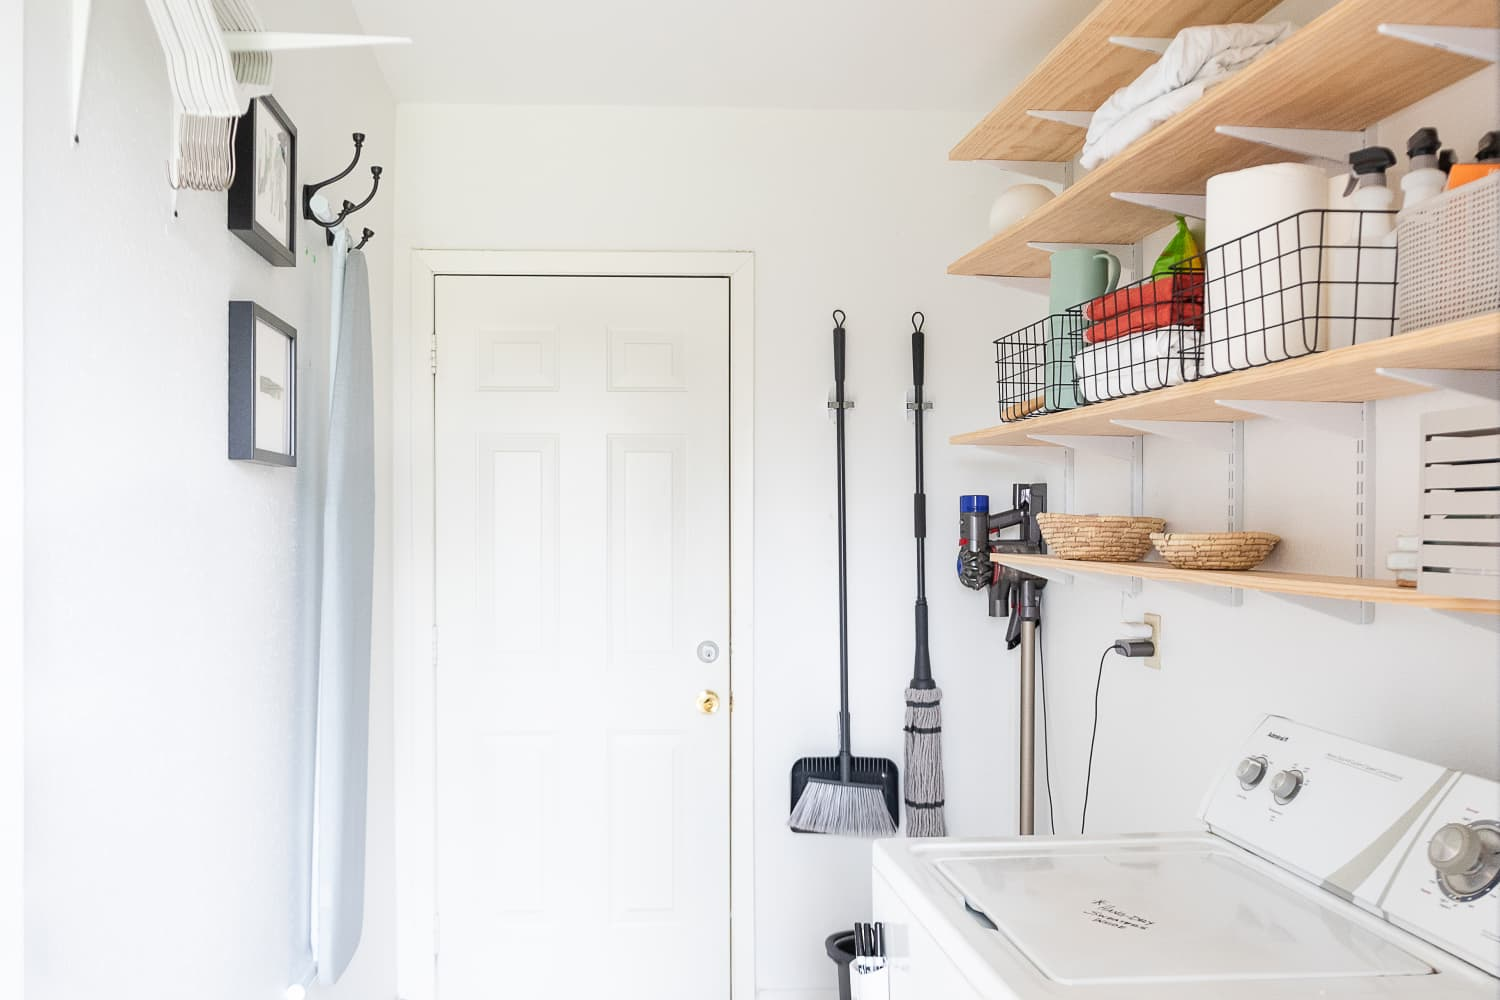 Vodka Belongs in Your Laundry Room, According to This HGTV Expert